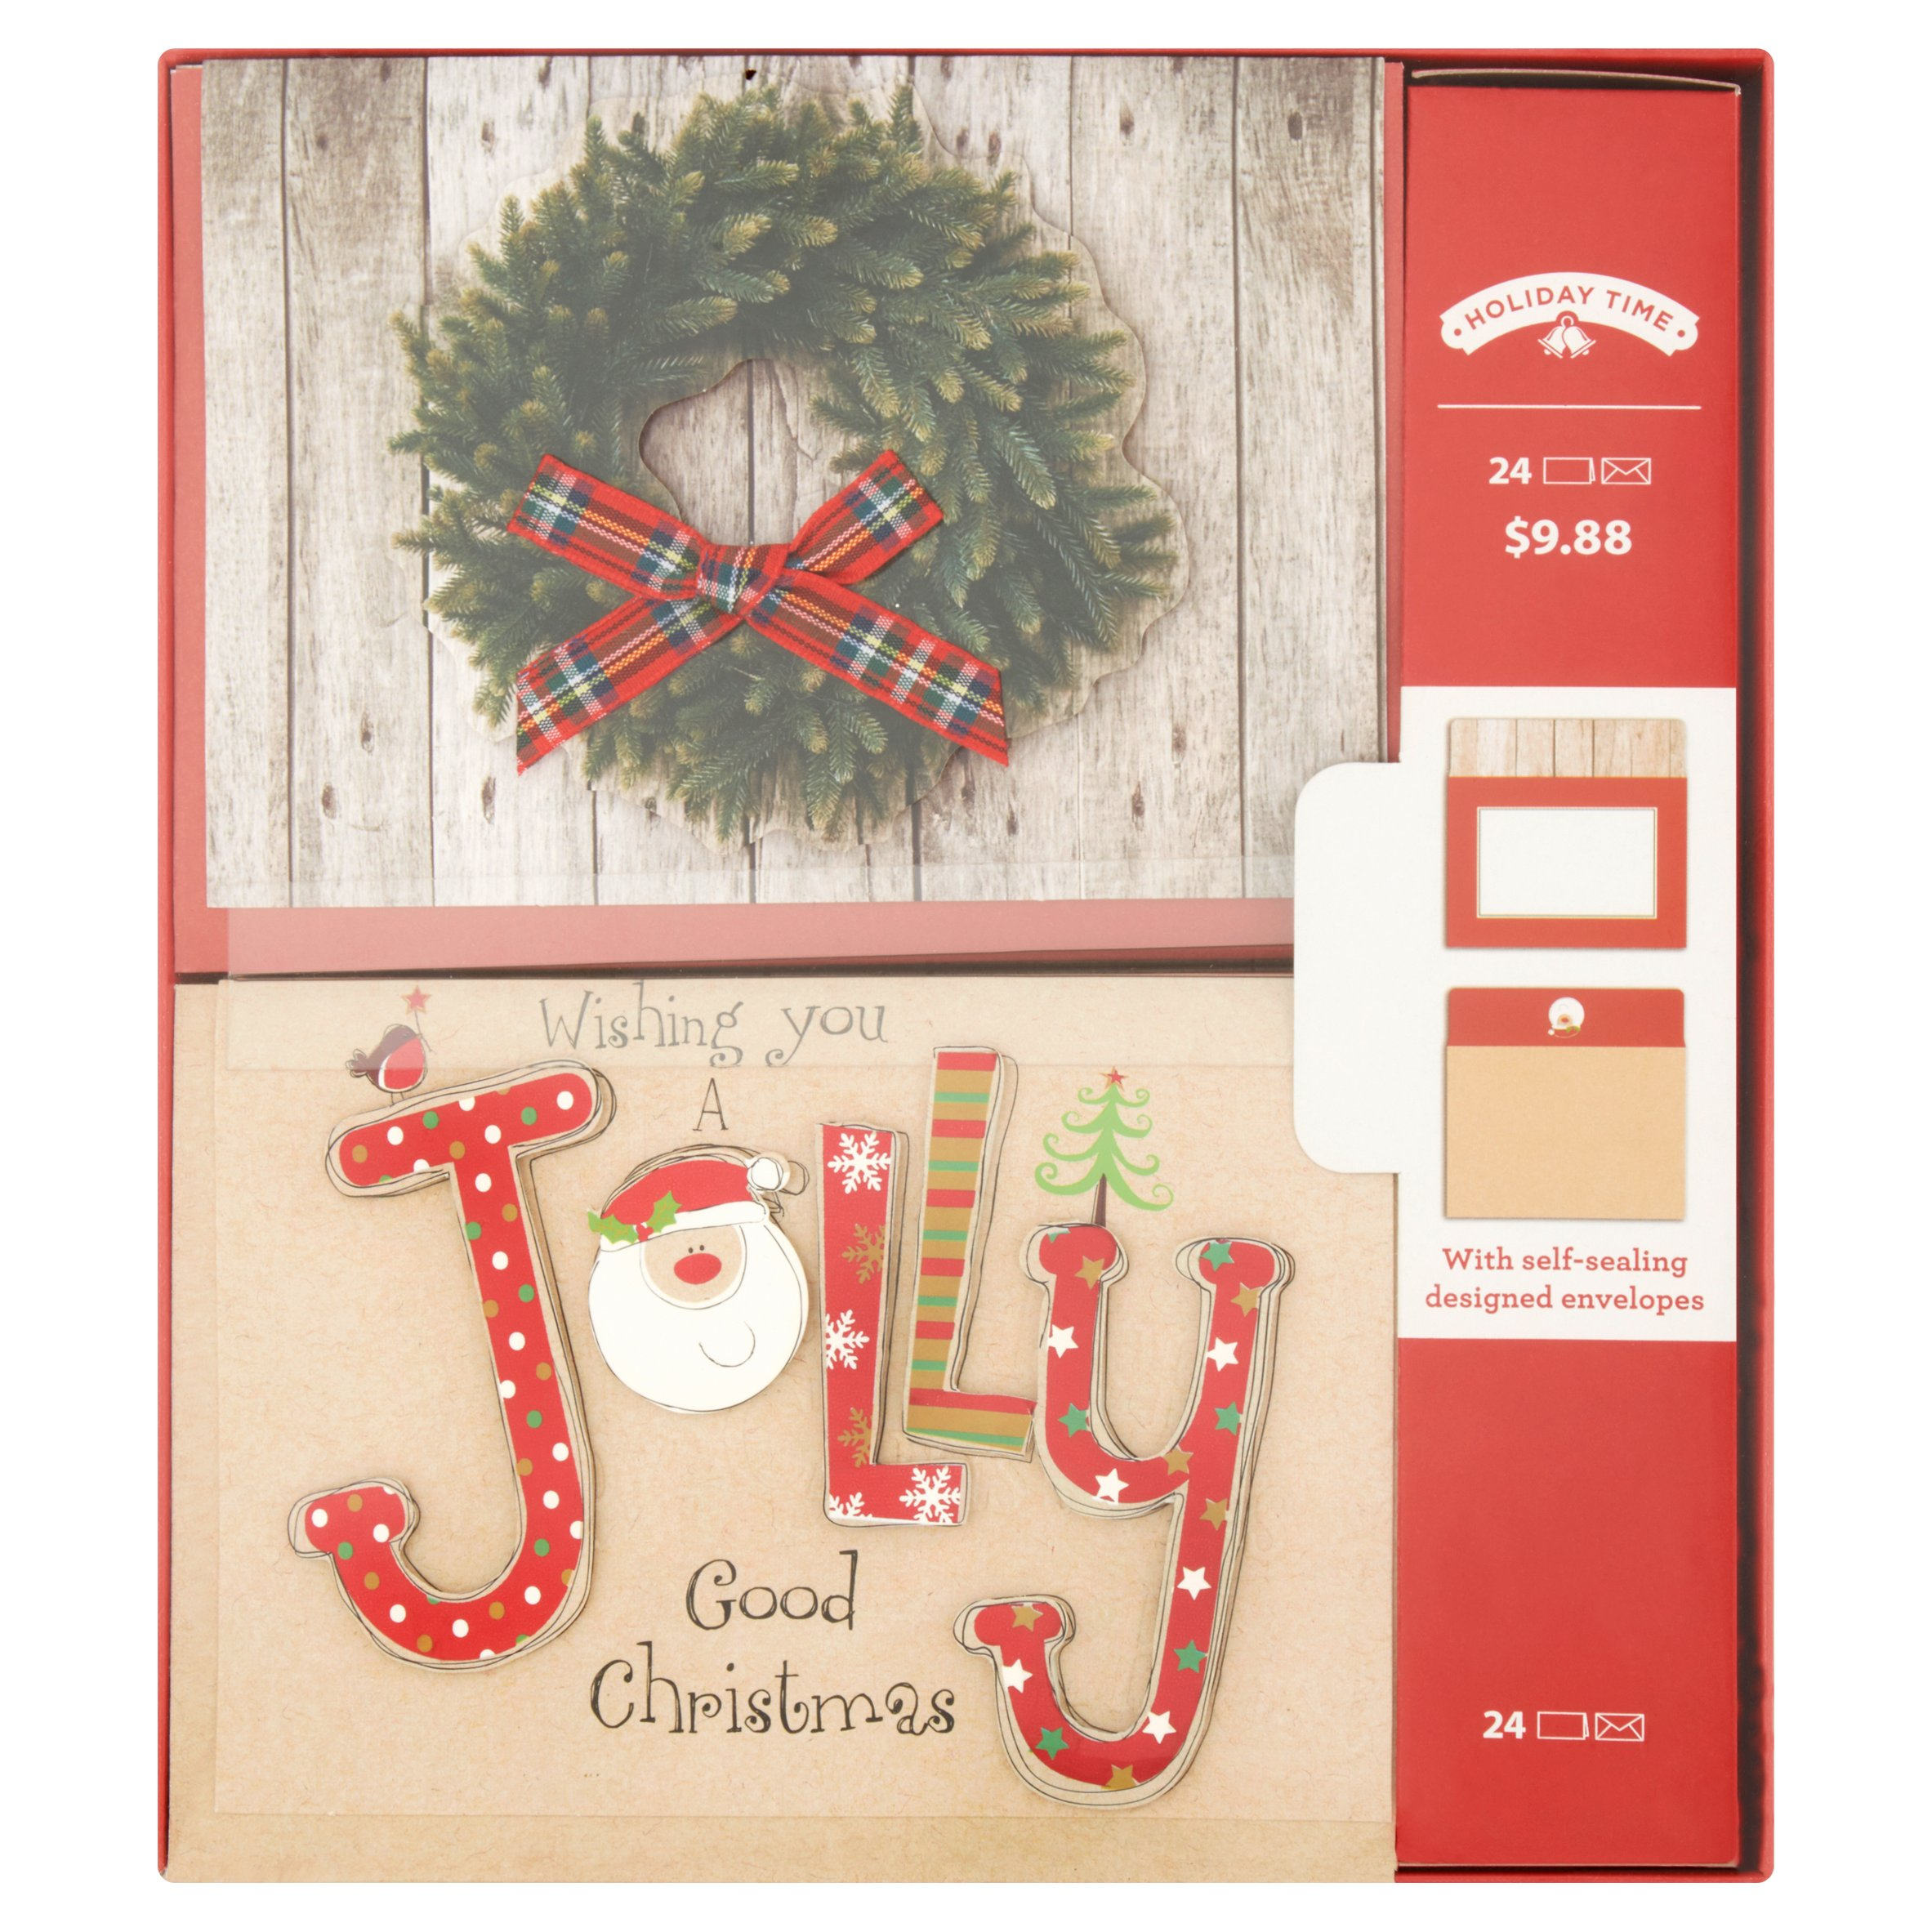 Holiday Time Wreath Cards, 24 count